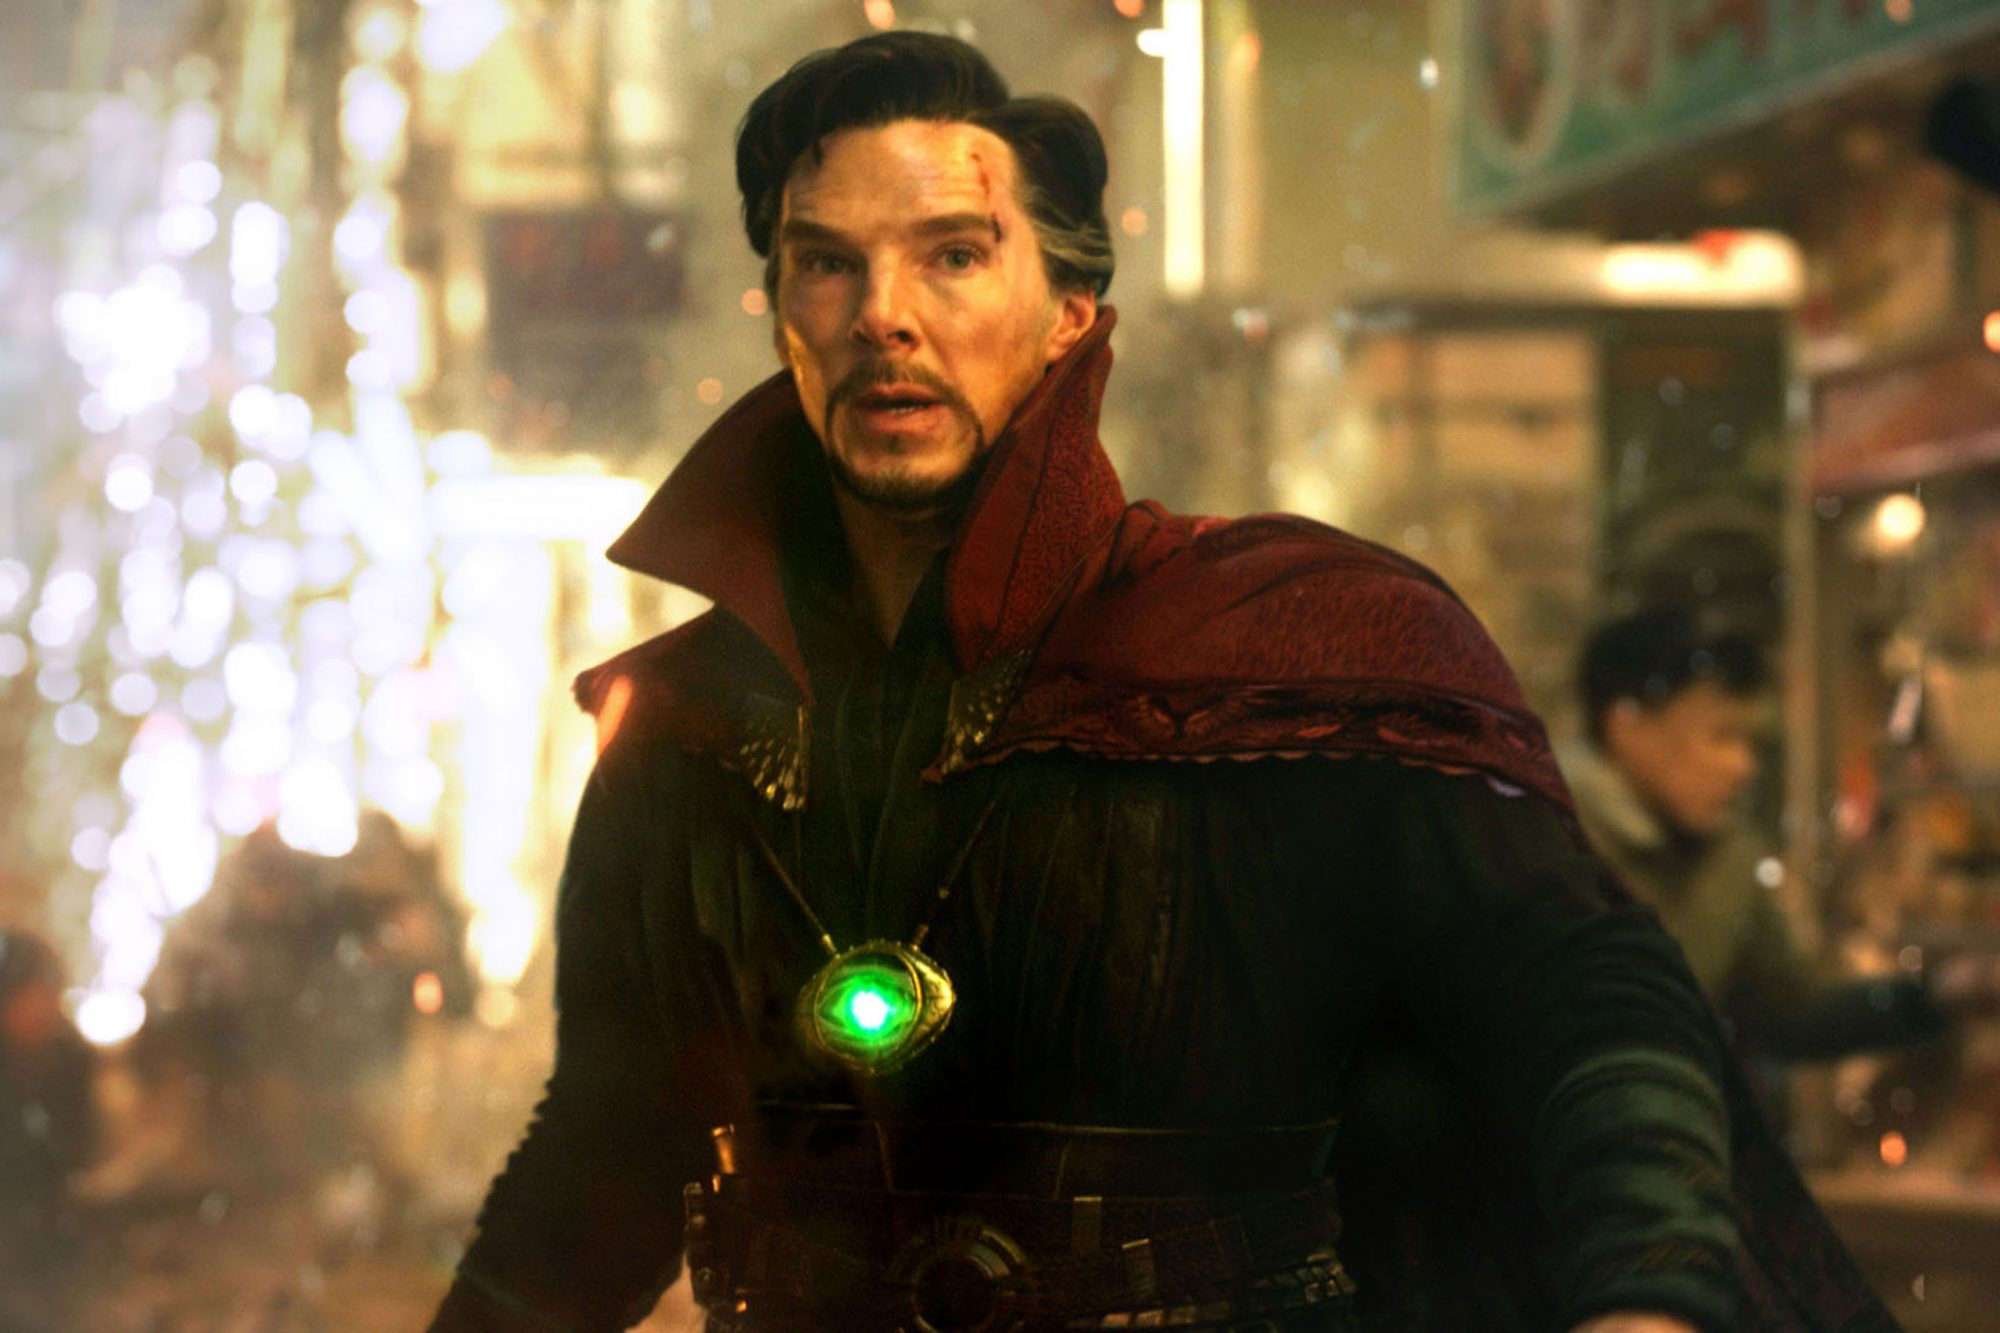 Doctor Strange (2016)Benedict Cumberbatch CR: Marvel